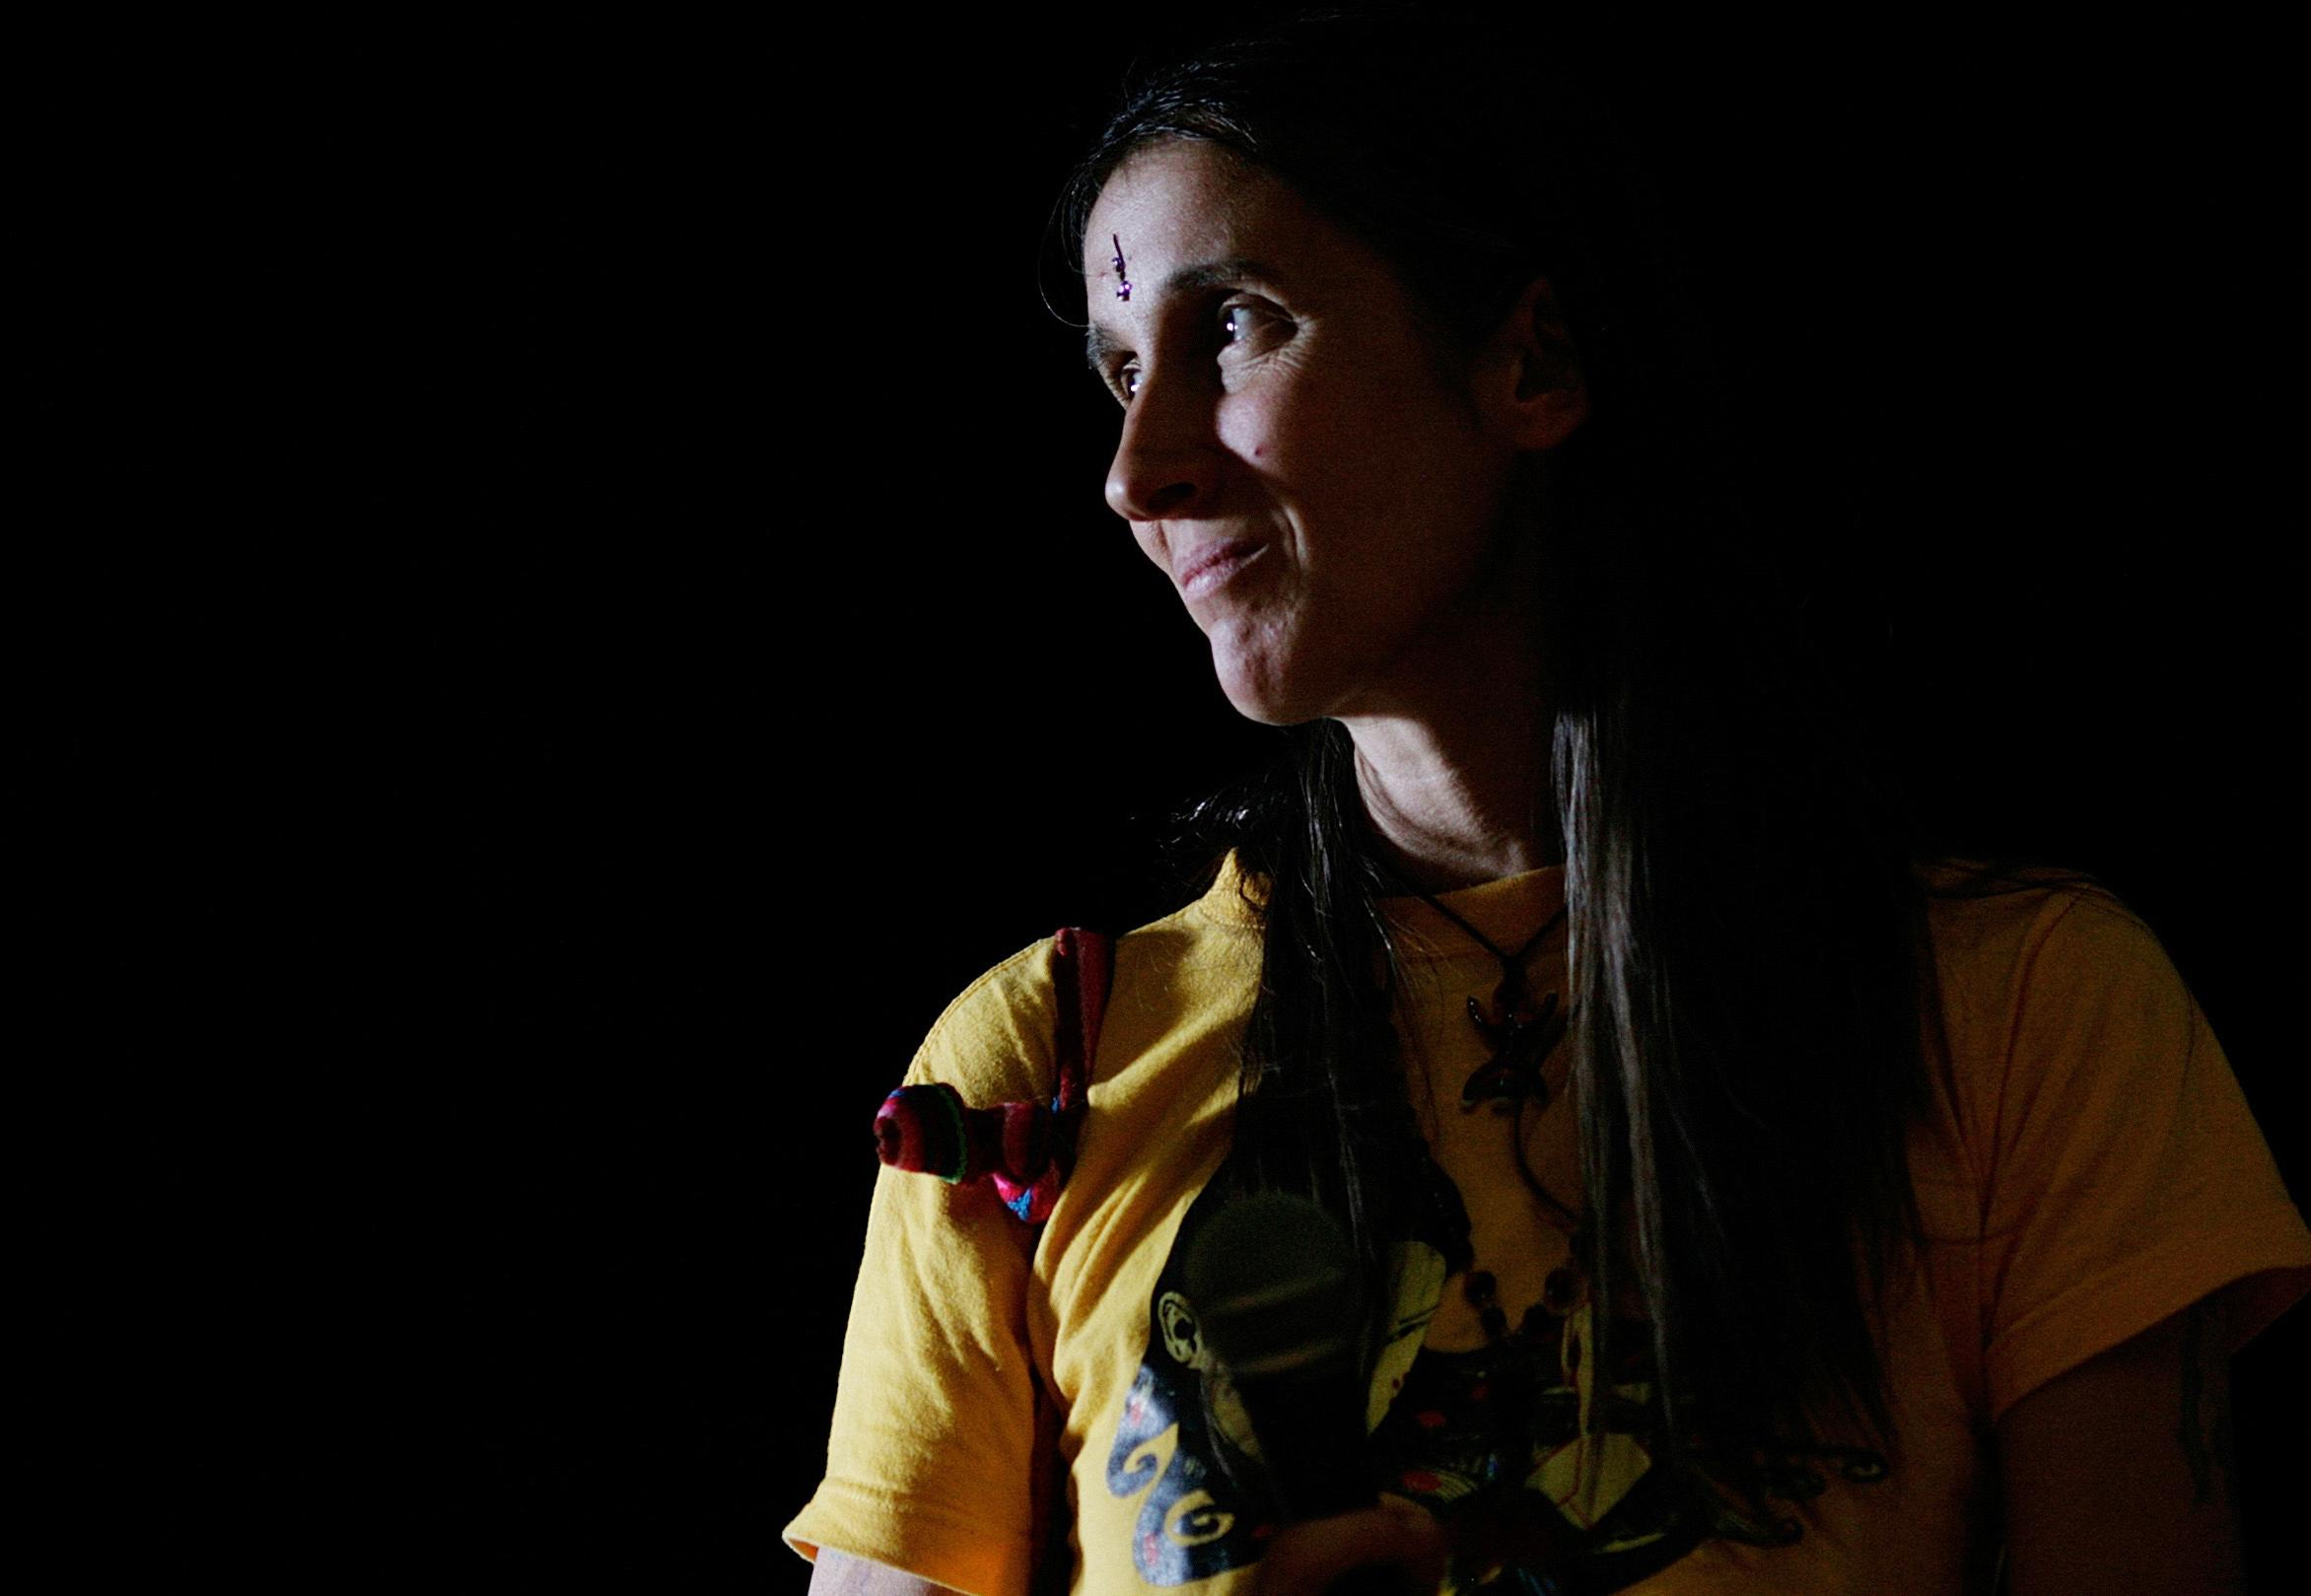 Colombia's Aterciopelados reunites for tour, new recording